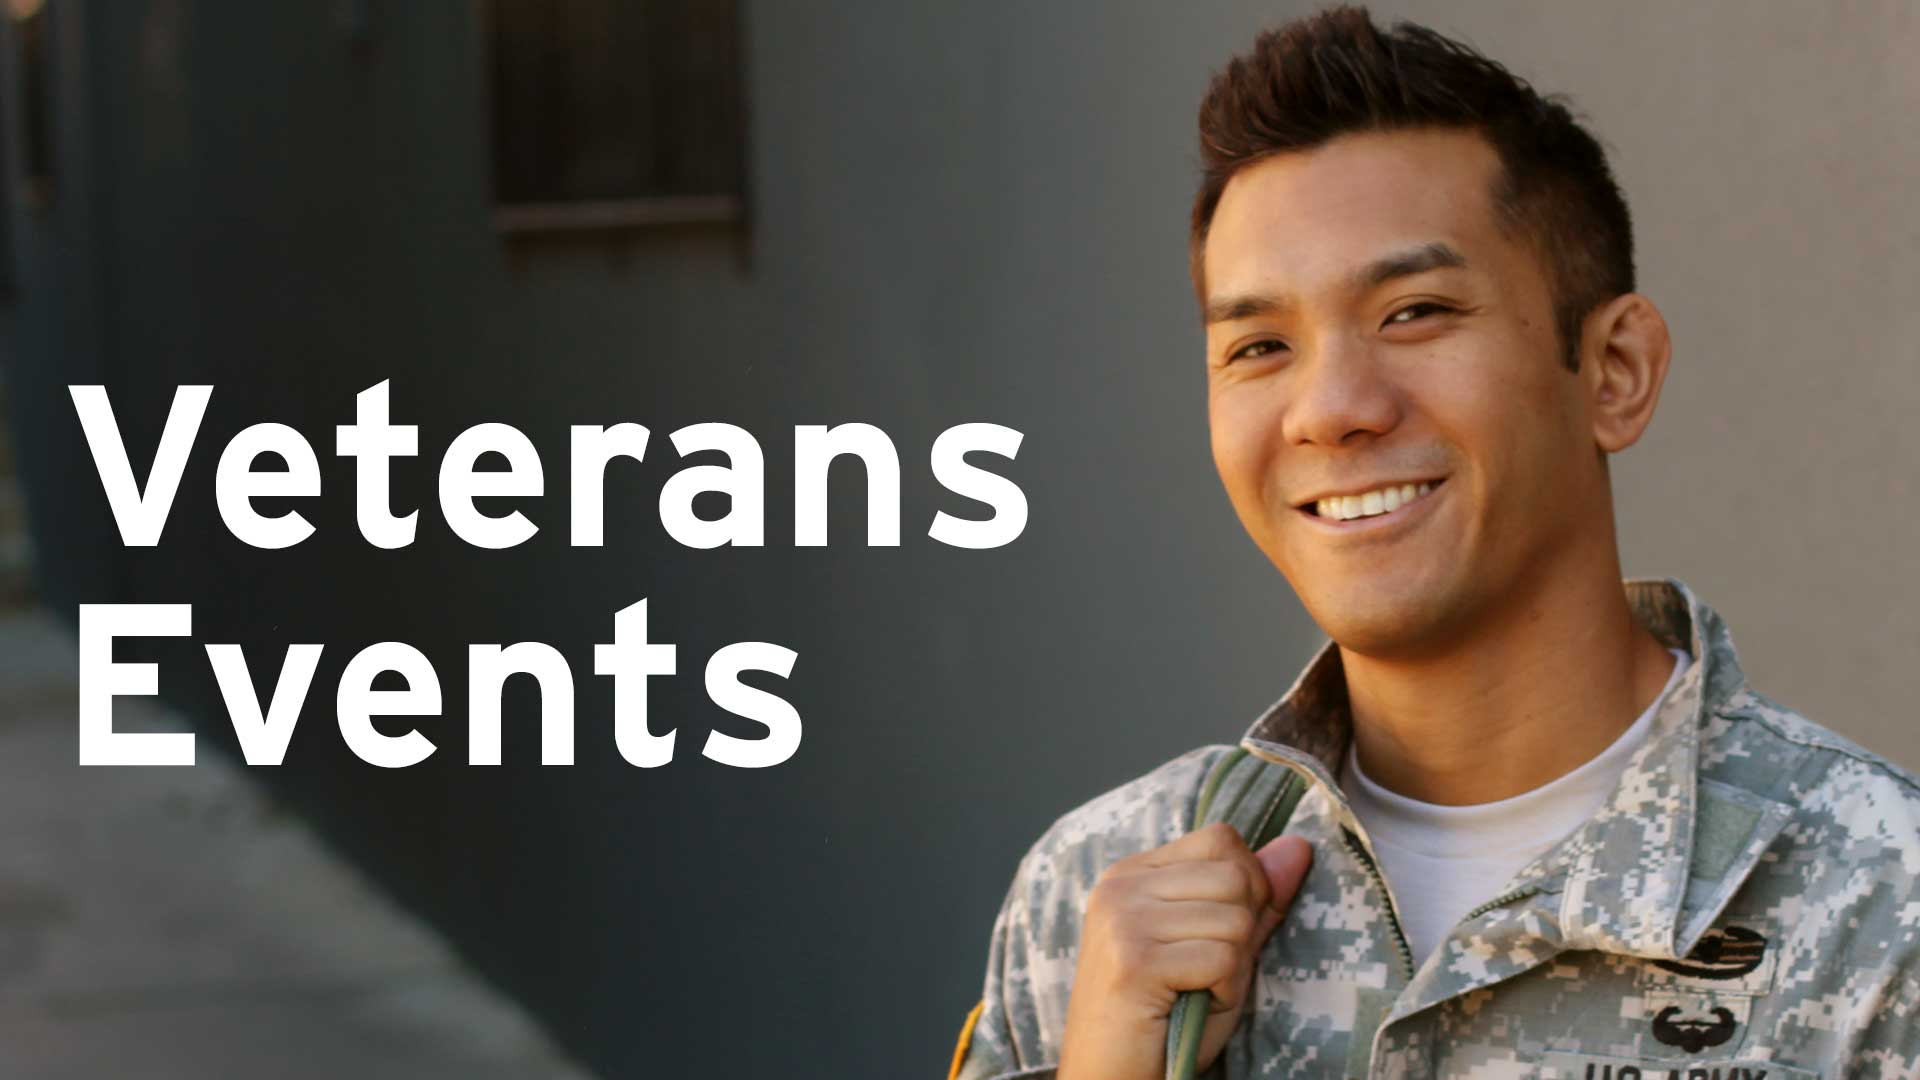 Check out the Veterans Events!